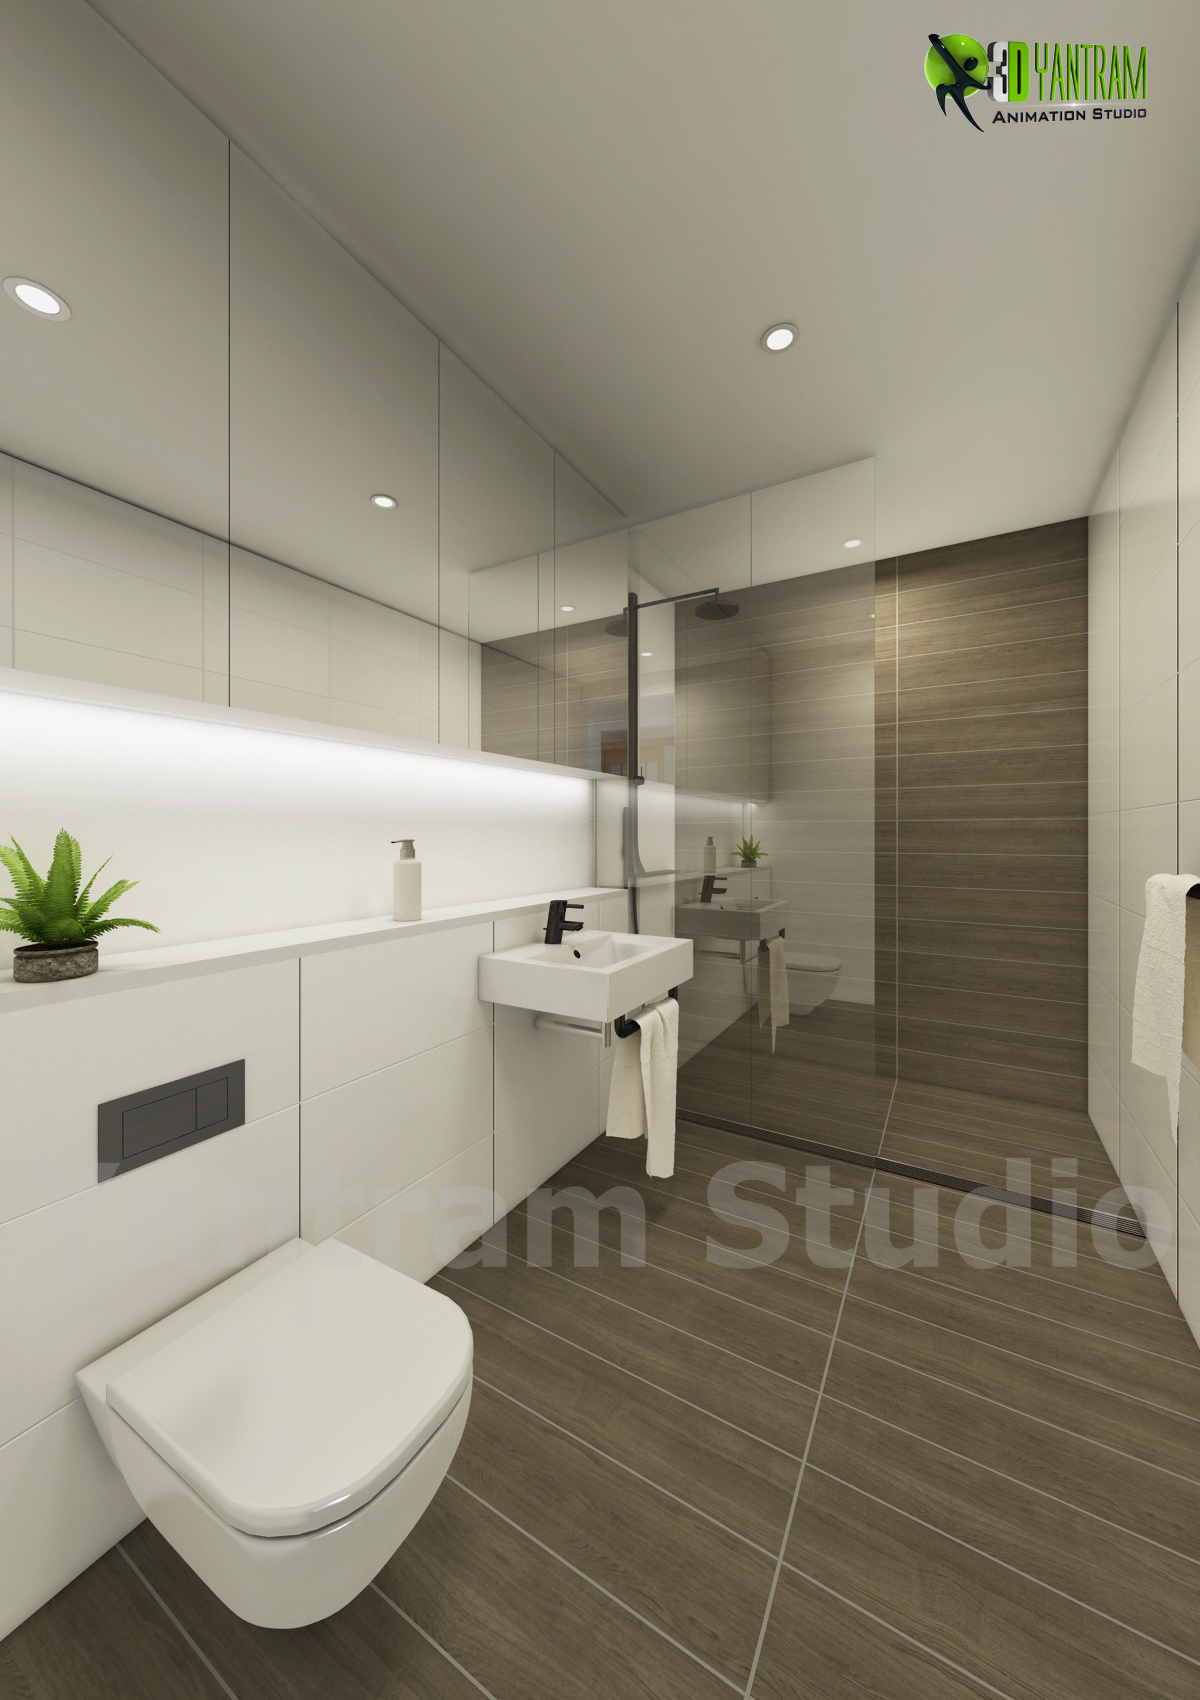 Bathroom Design 3d Model : D interior bathroom design by yantramstudio modeling